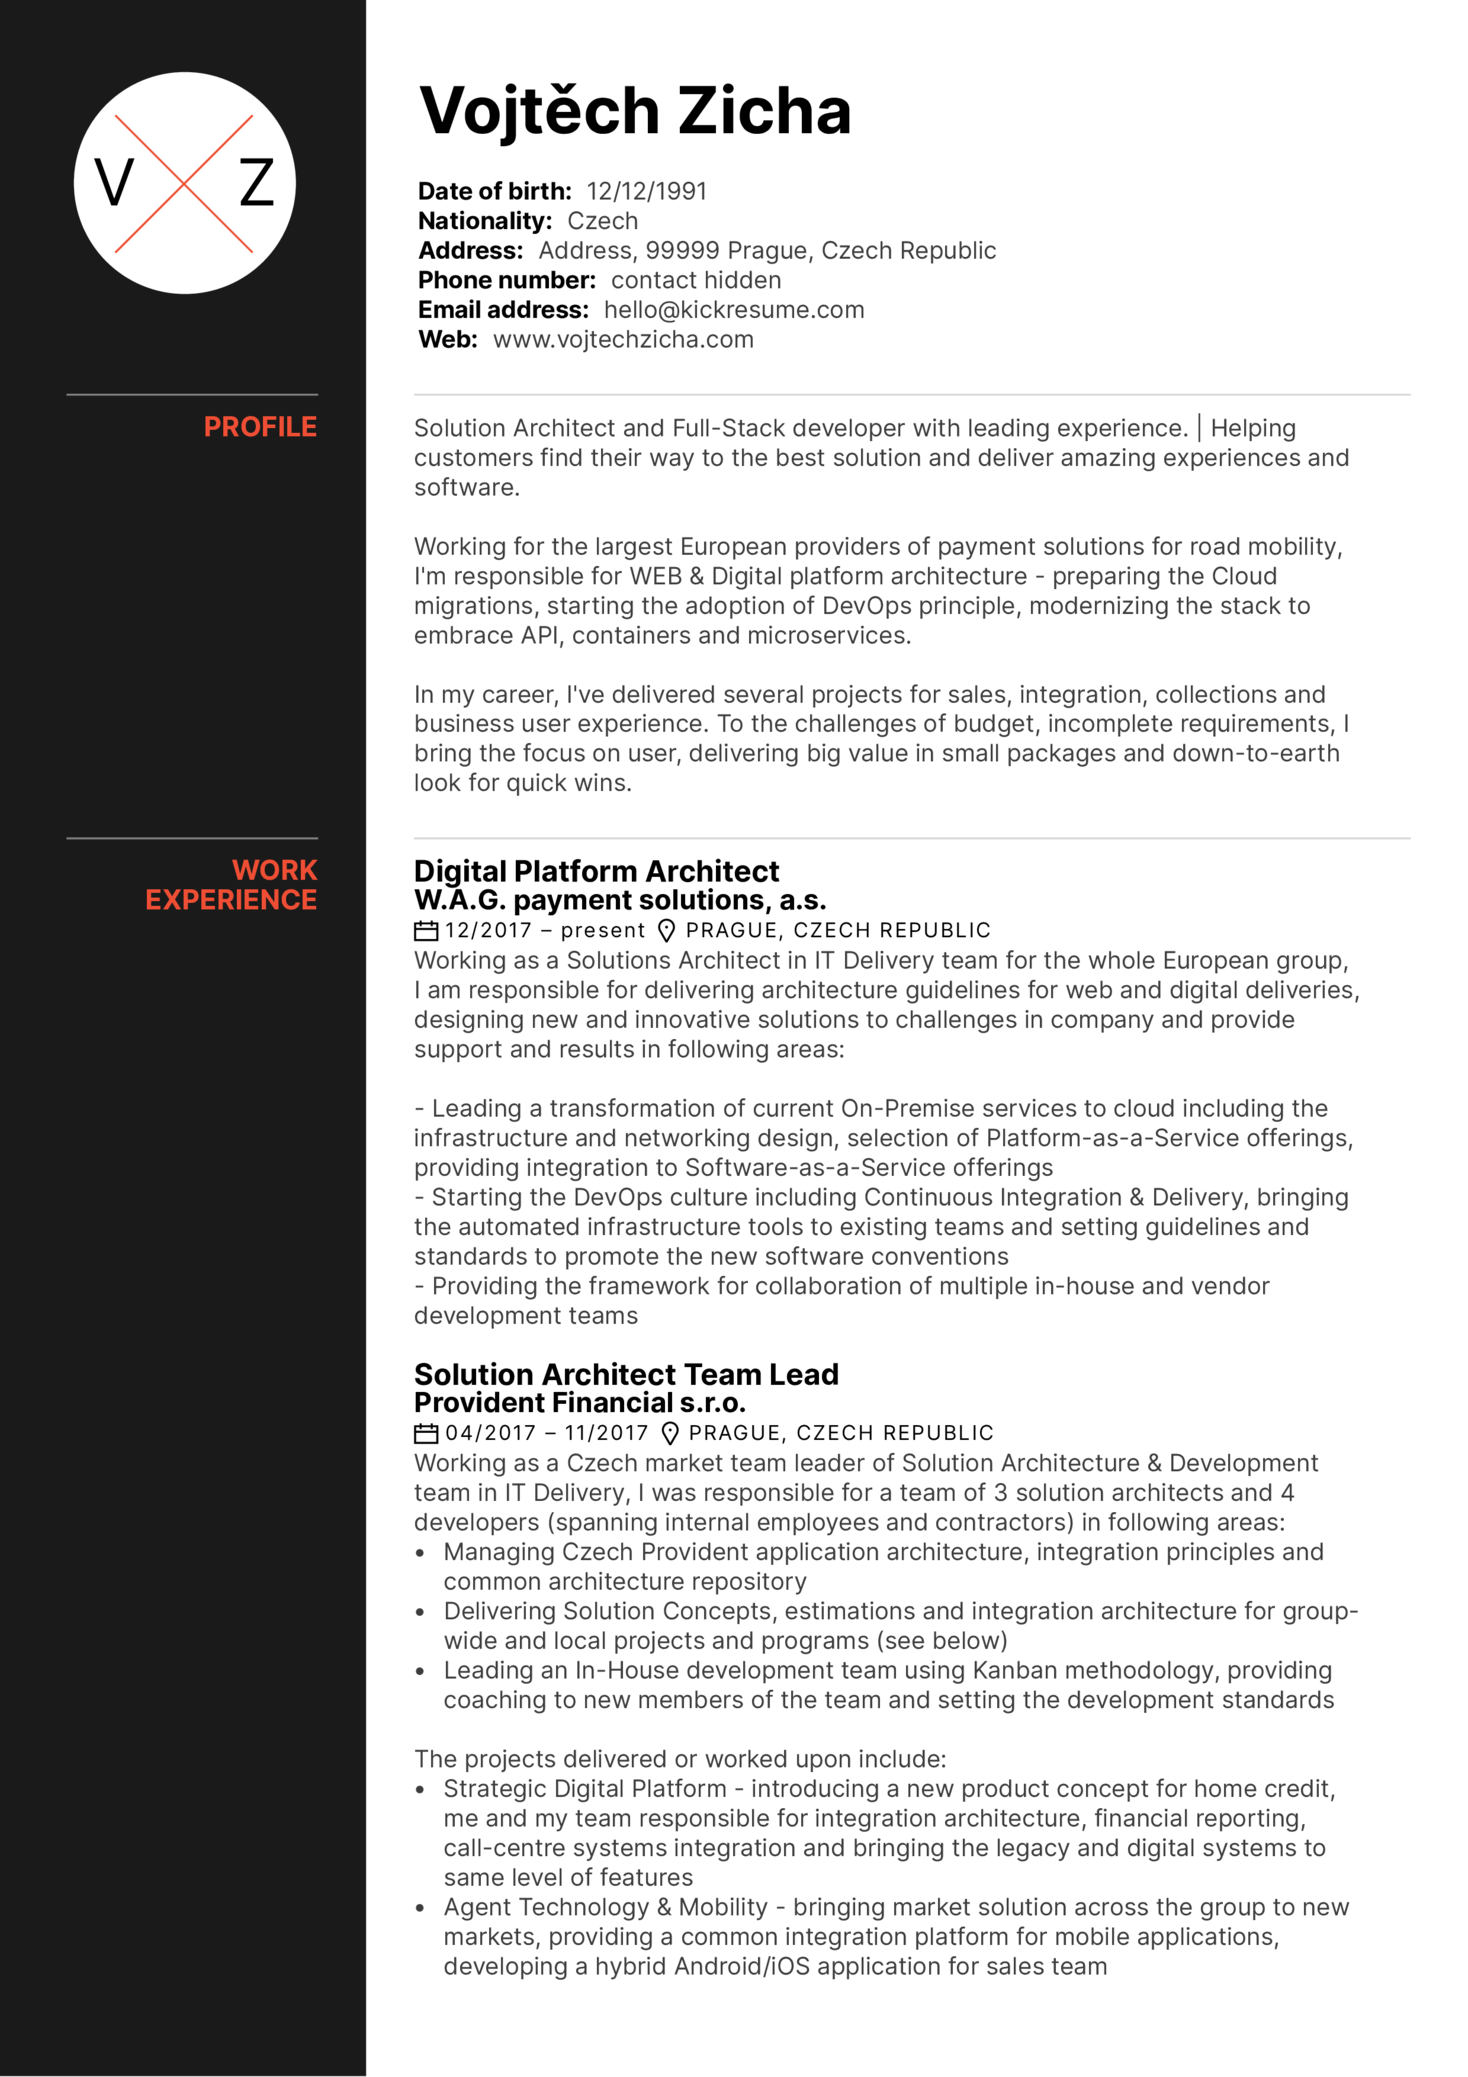 Resume Examples by Real People: Solution architect resume